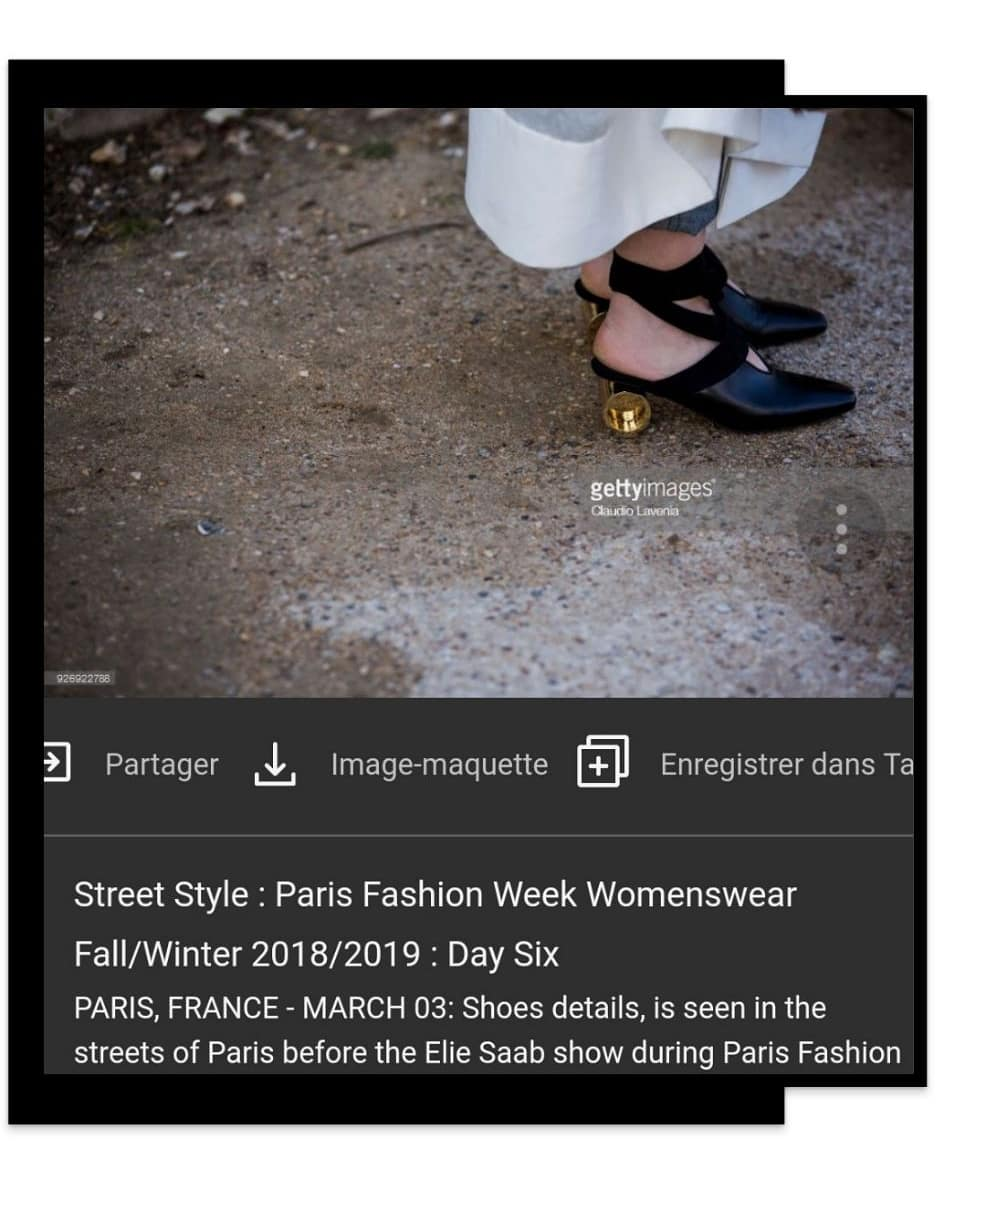 carolina ogliaro the world c fashion week street style influencer style icon inspiration